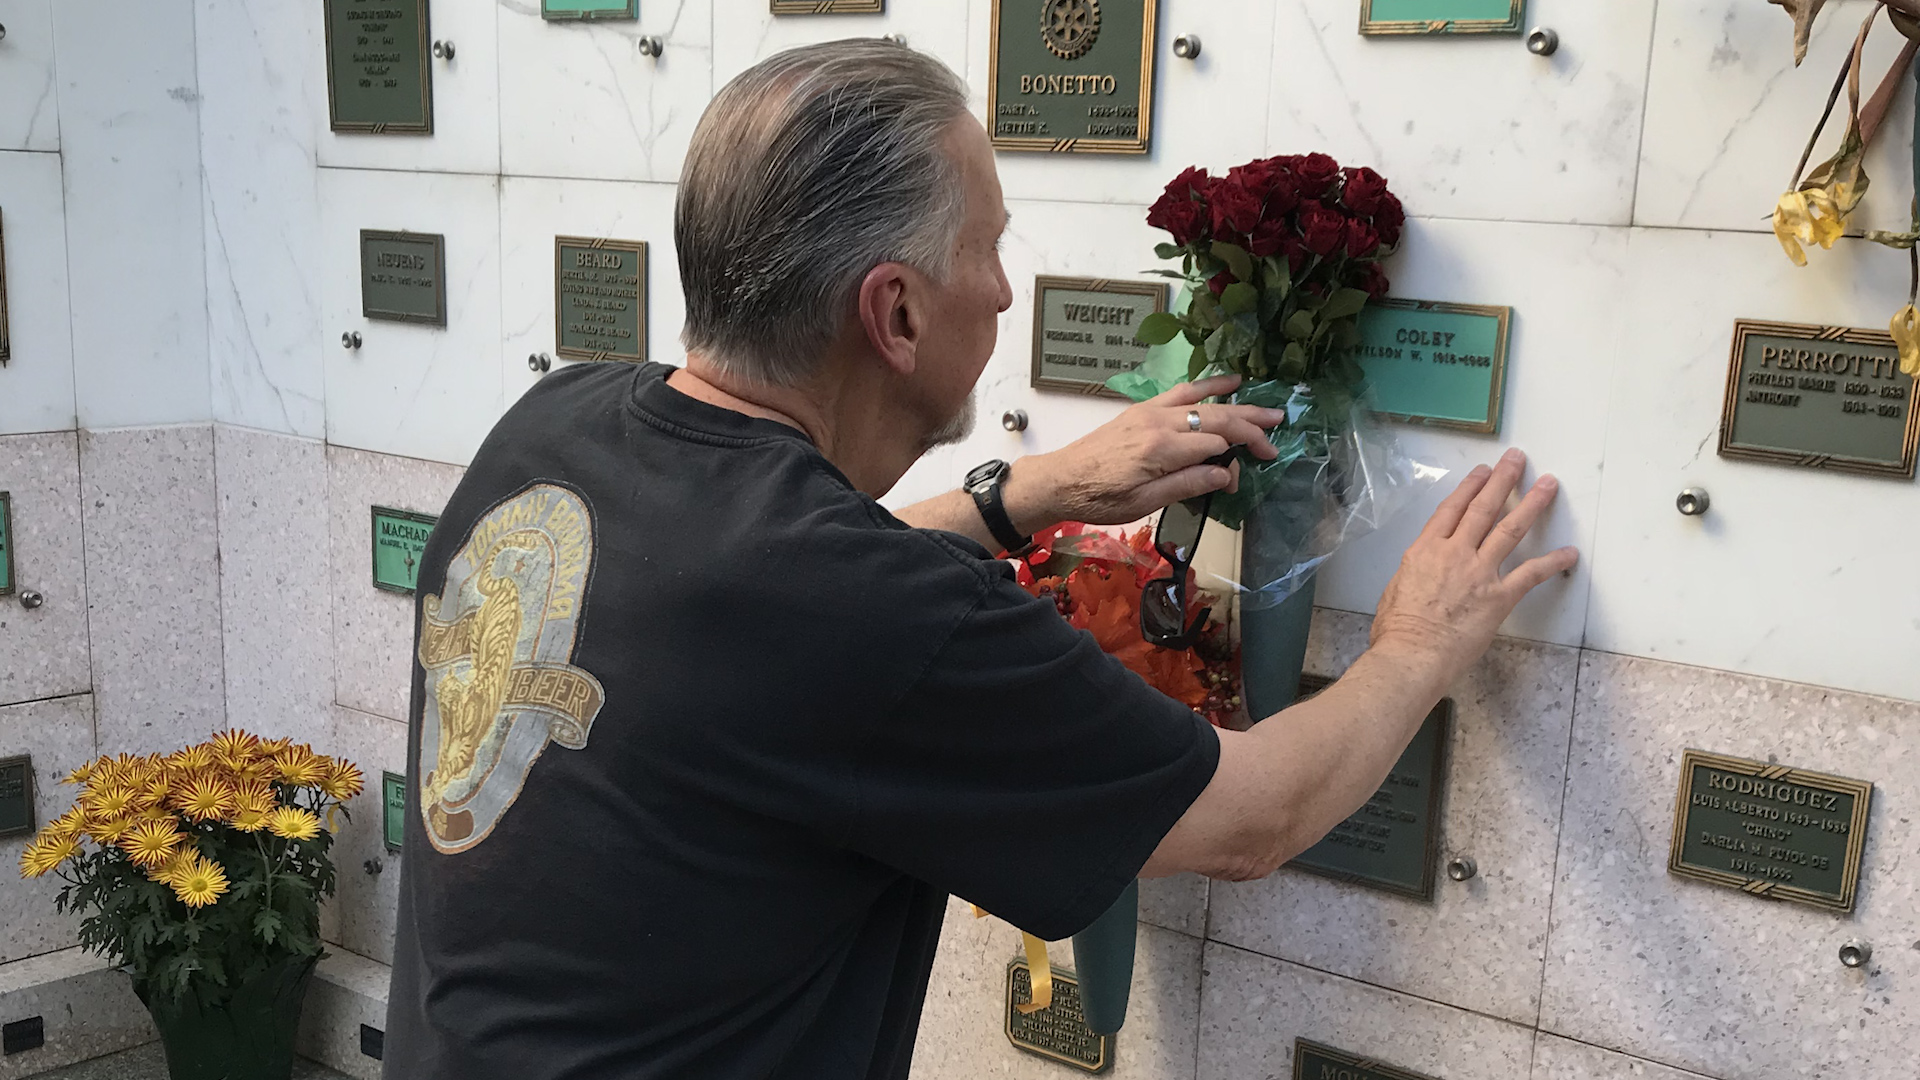 Man putting flowers on a grave